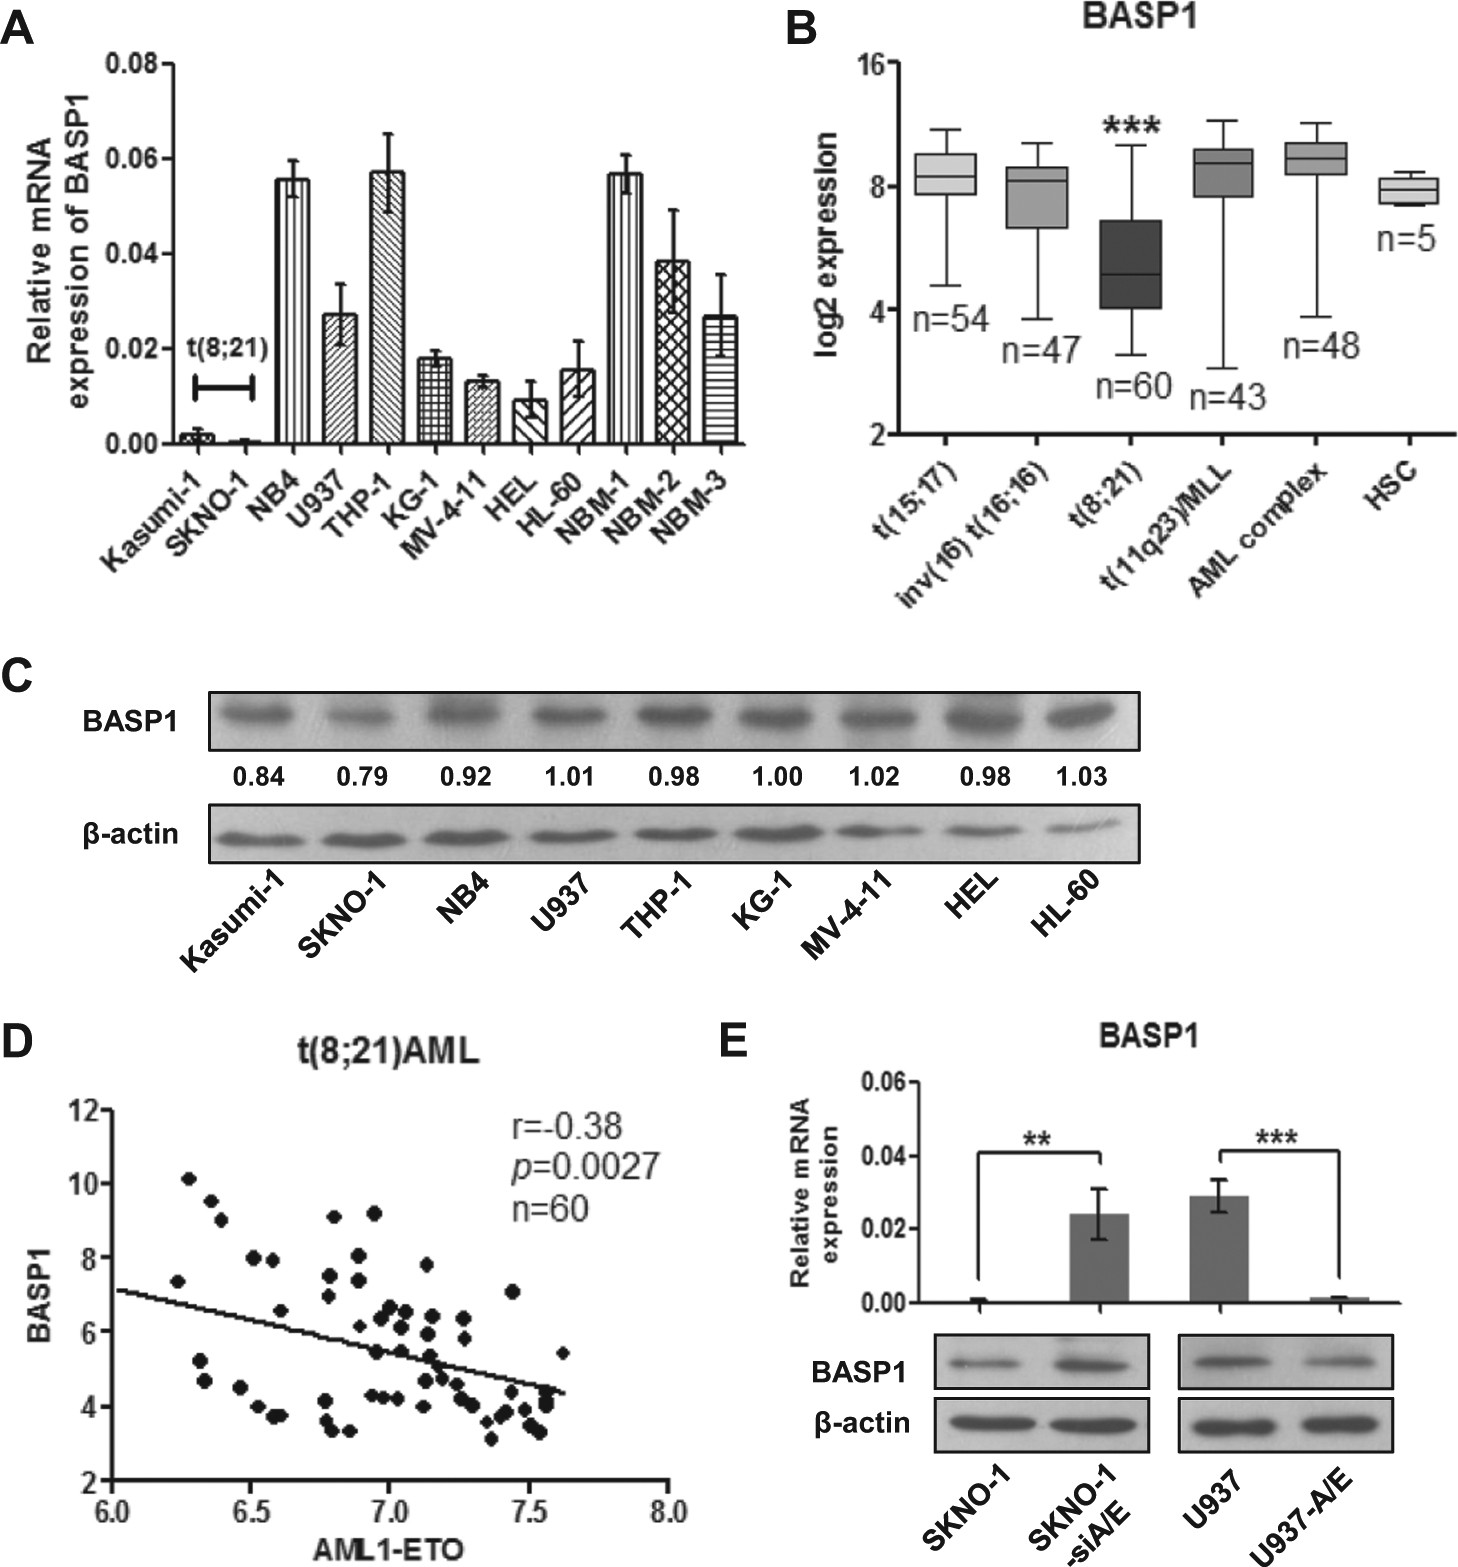 Methylation Associated Silencing Of Basp1 Contributes To Circuit Wizard Professional Edition Download Leukemogenesis In T821 Acute Myeloid Leukemia Experimental Molecular Medicine